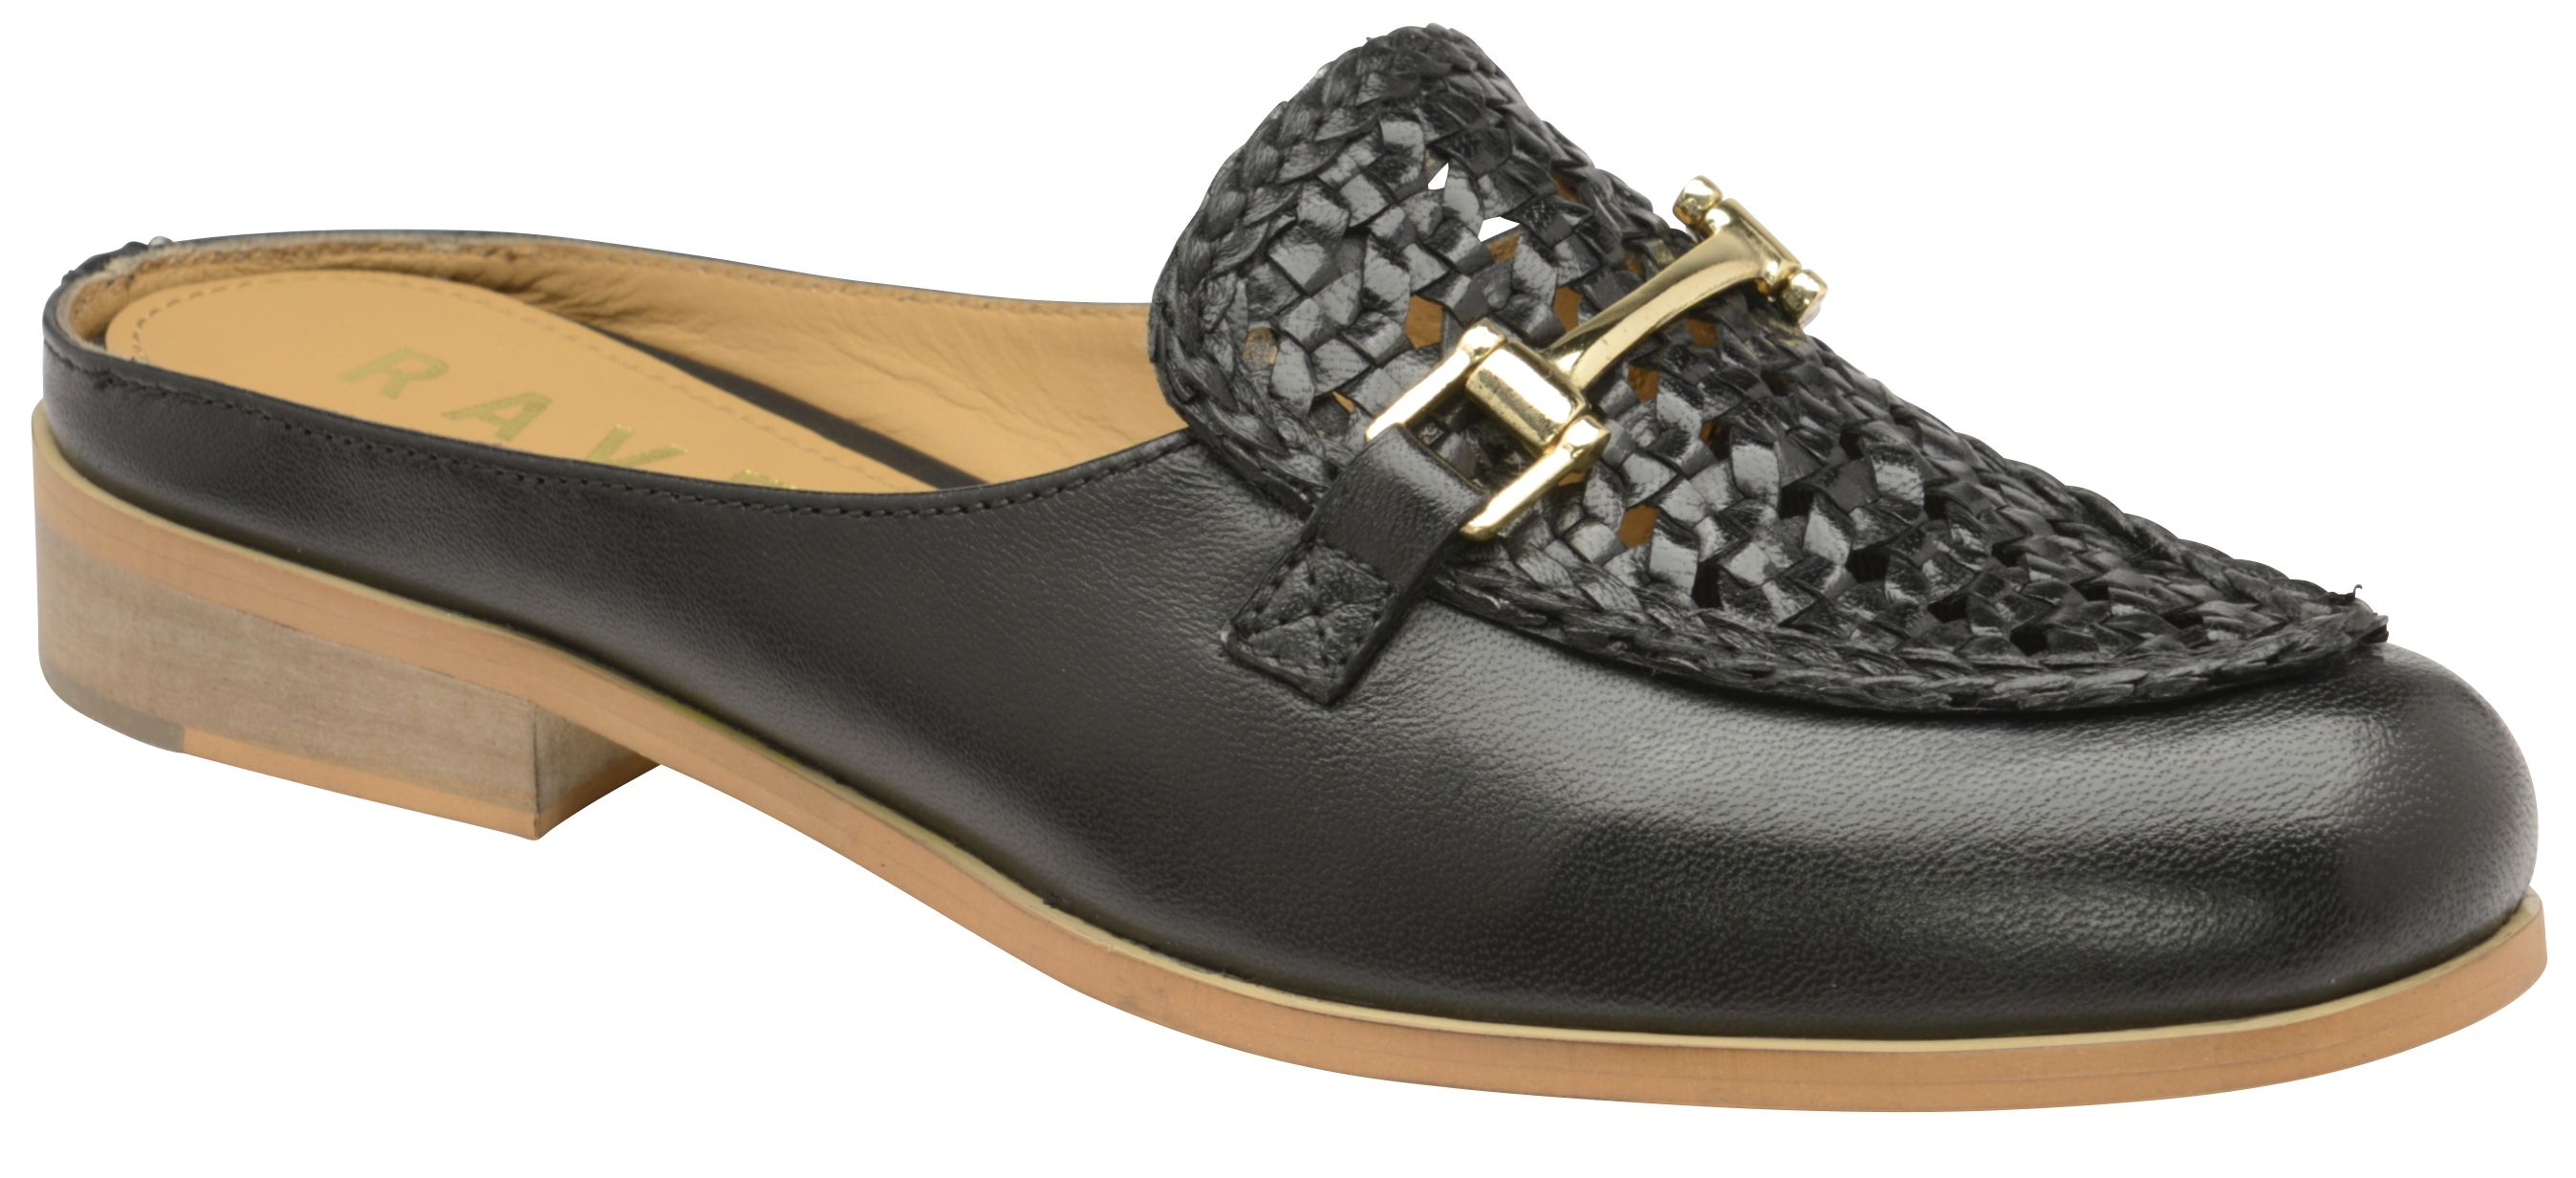 Ravel Axis Backless Loafers, Black Leather